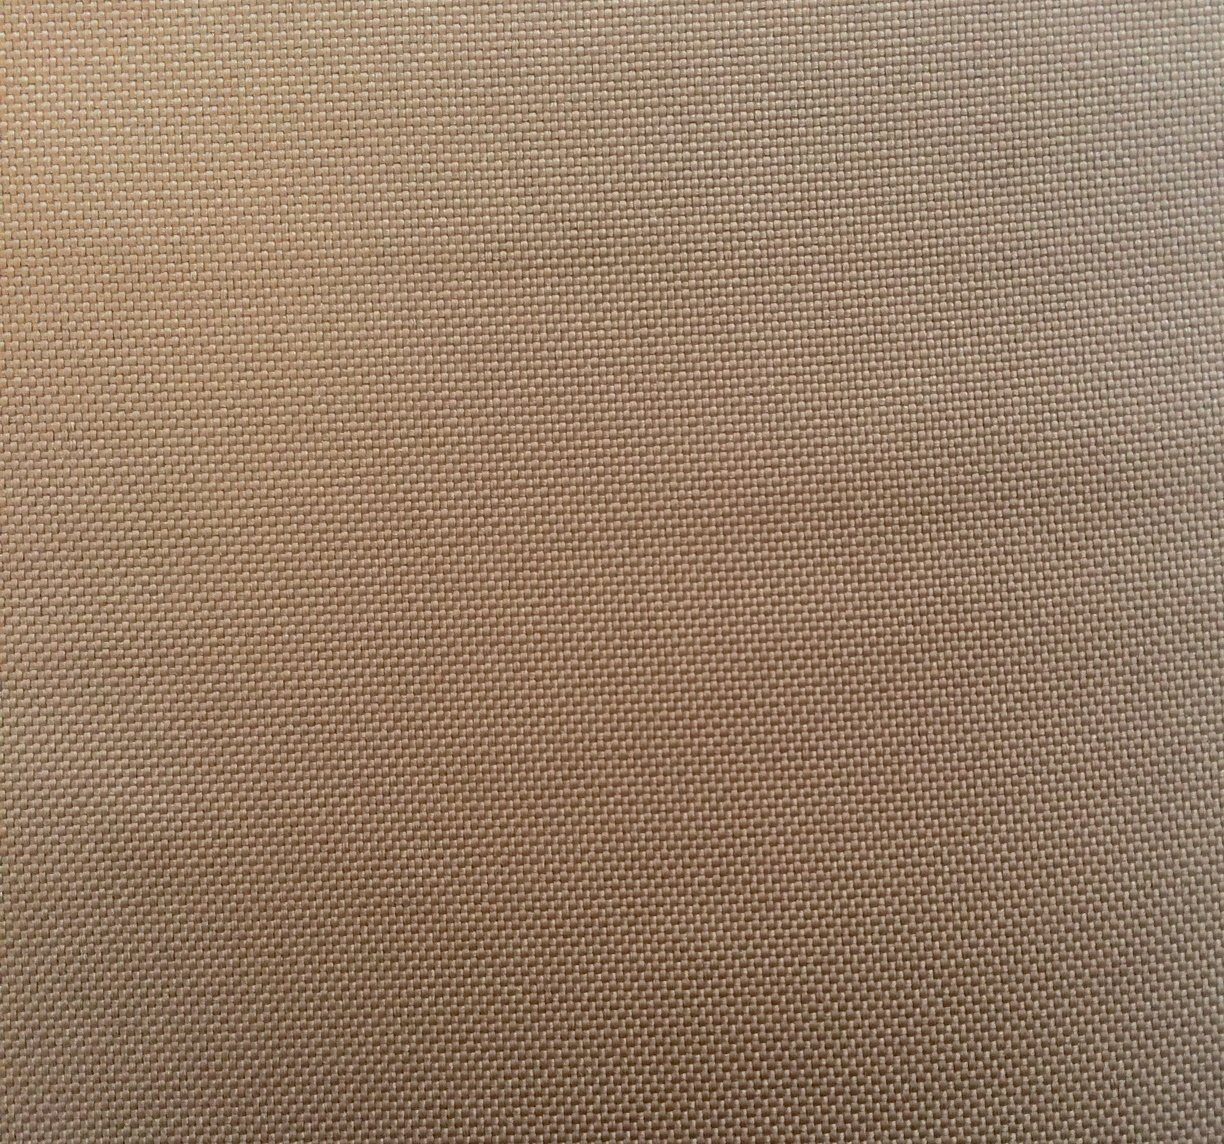 Inspiring Furniture LTD 1x Cushion for Picnic Bench - various sizes and colours available (150cm, Taupe) - CUSHION ONLY